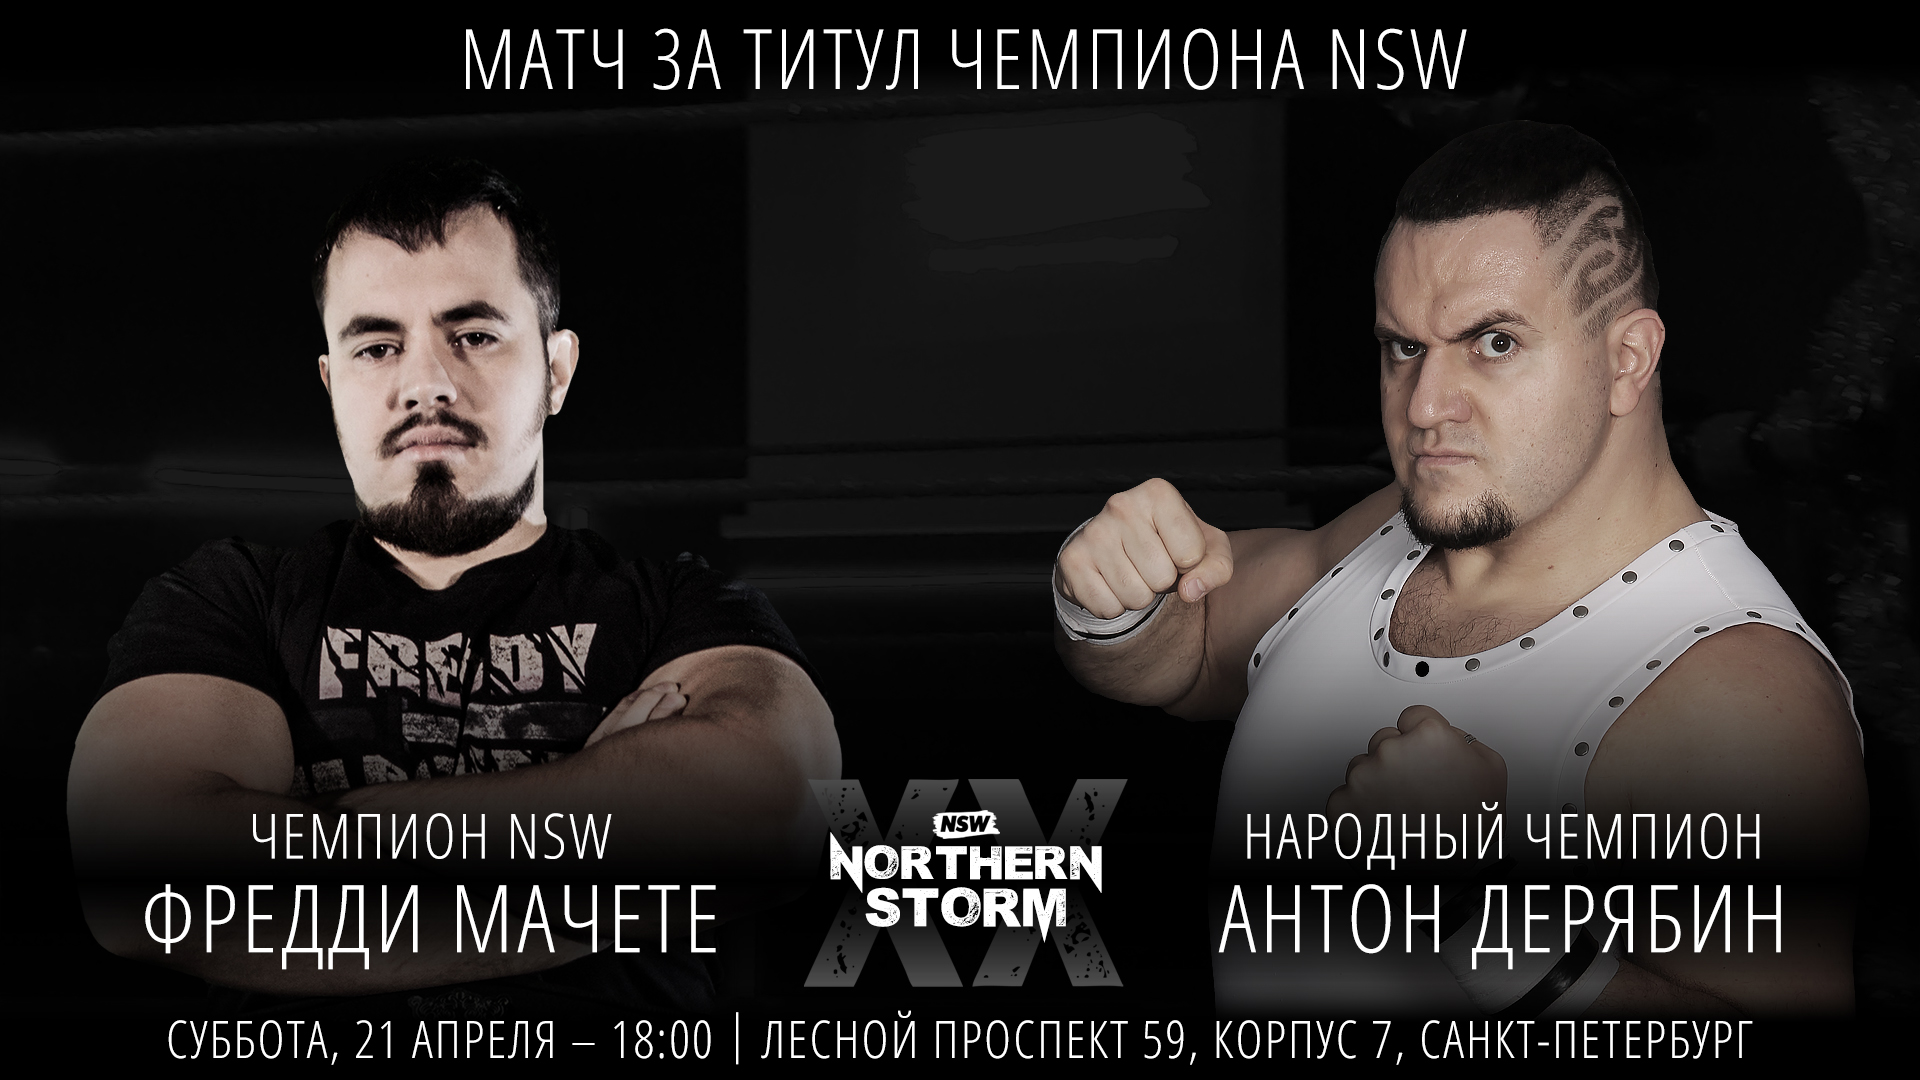 NSW Northern Storm XX: Фредди Мачете против Антона Дерябина